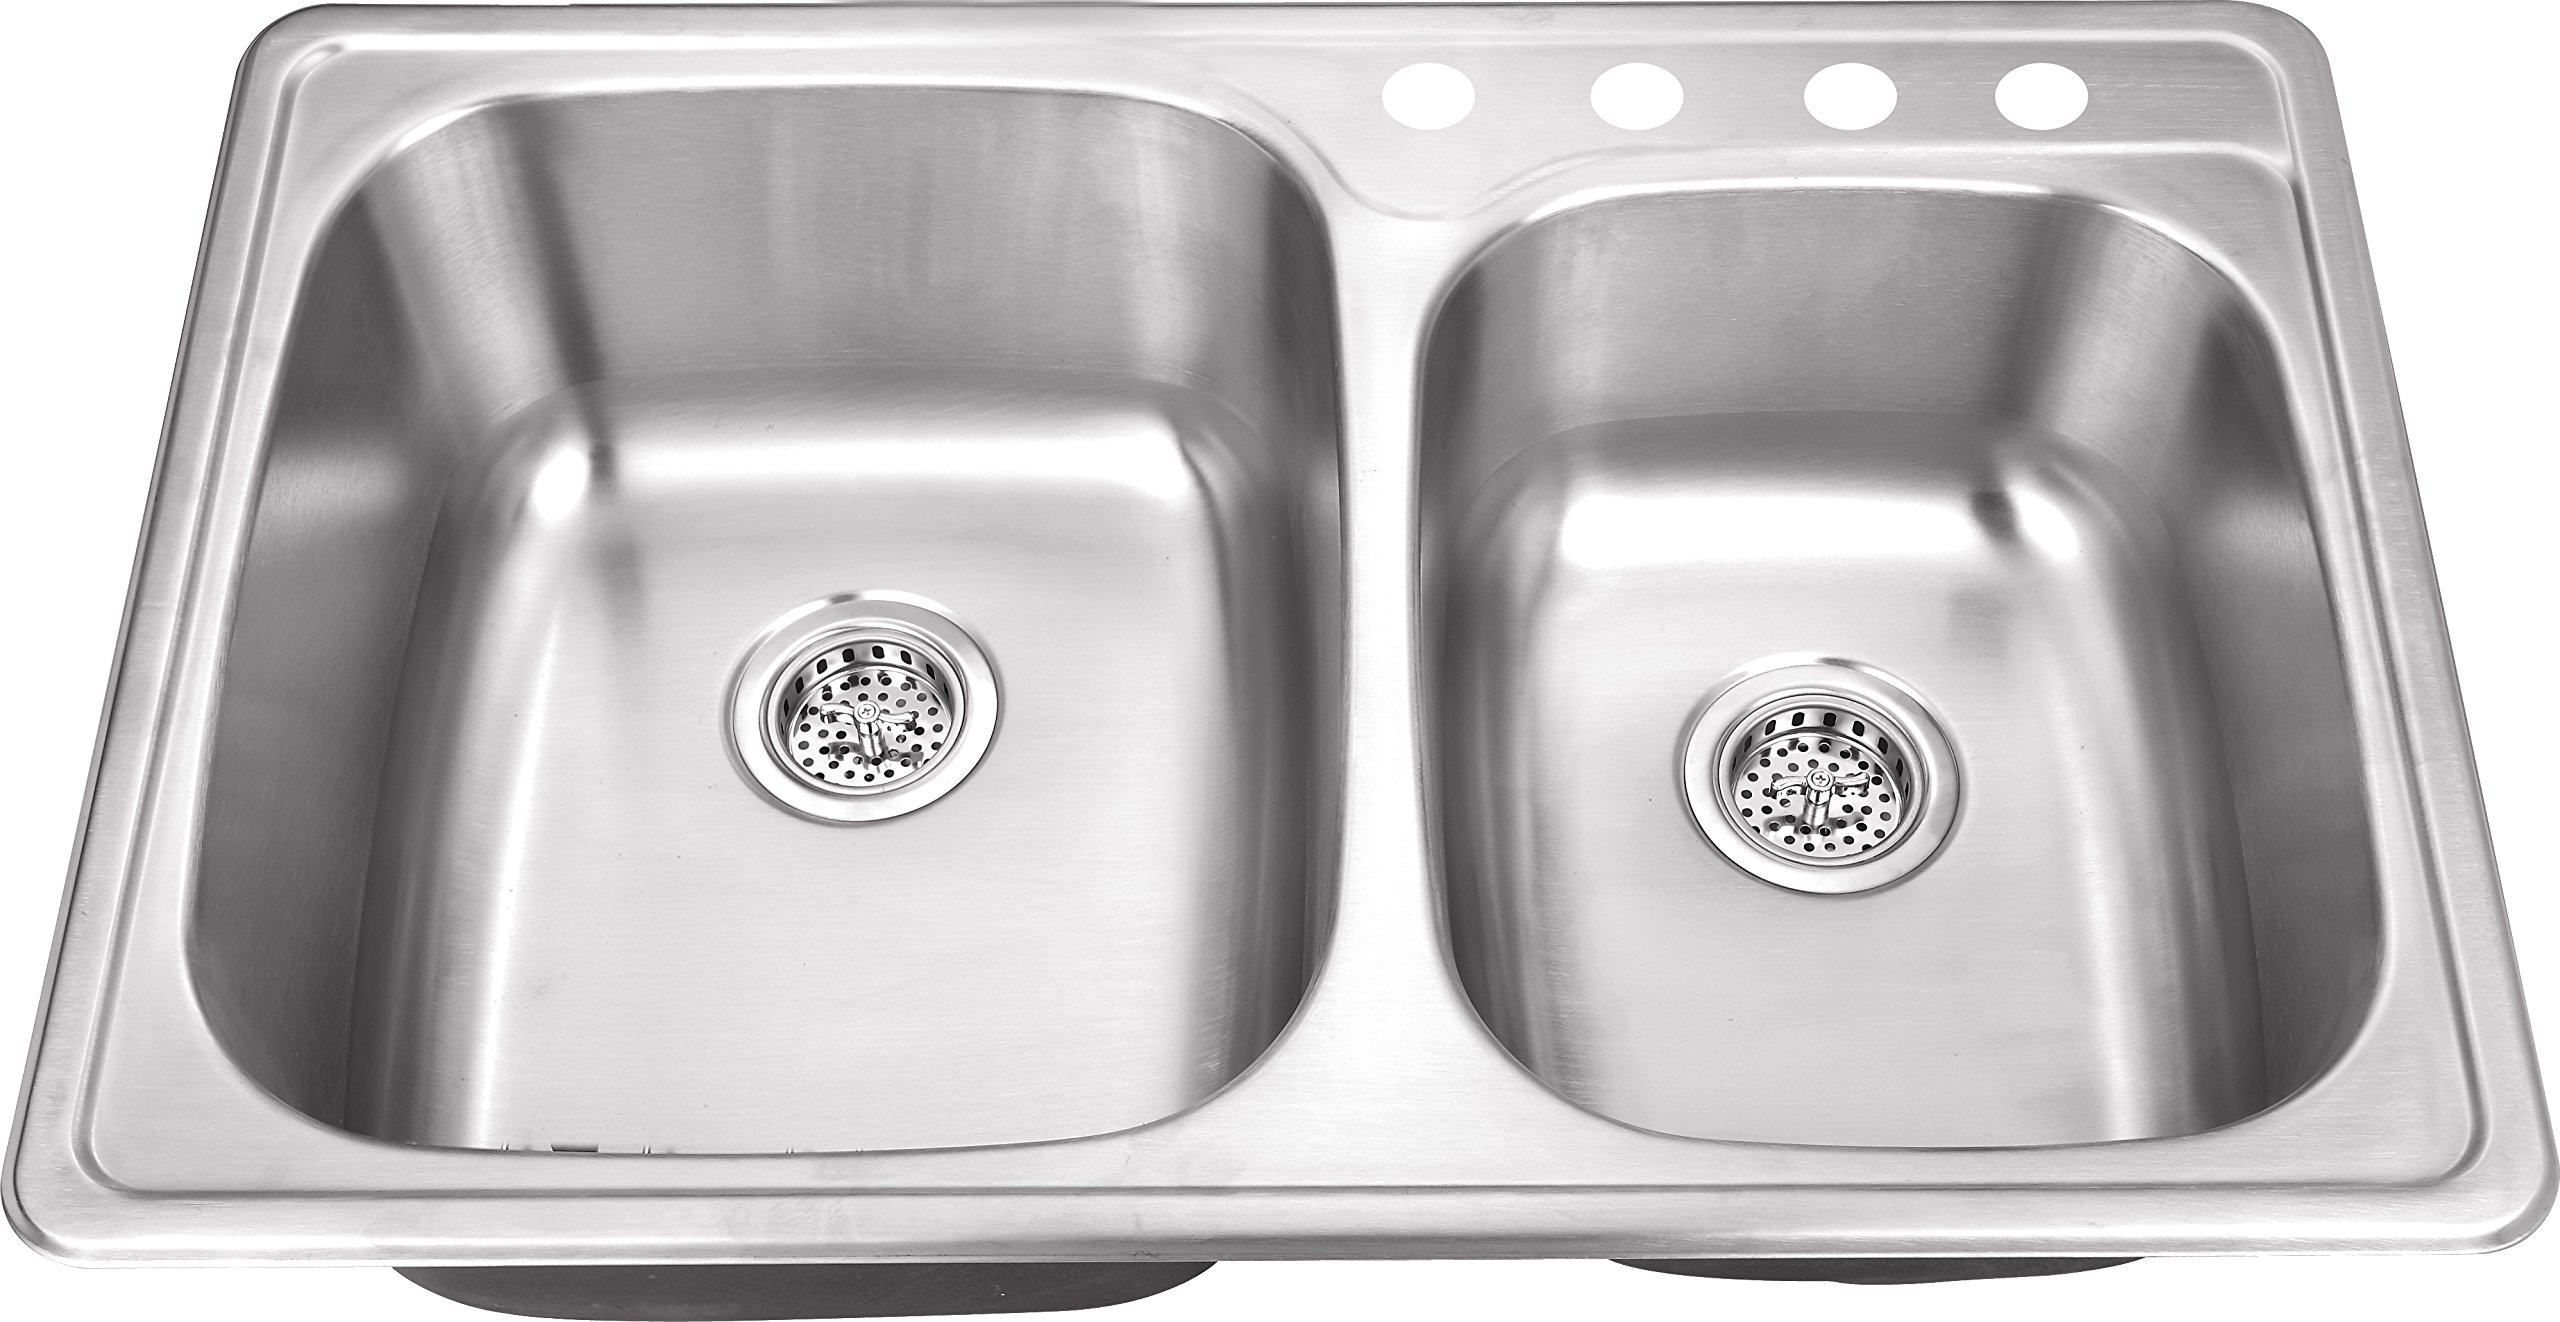 TM6040 33''x22''x8'' Top Mount/Drop In 60/40 Stainless Steel Double Bowl Kitchen Sink by Magnus Sinks